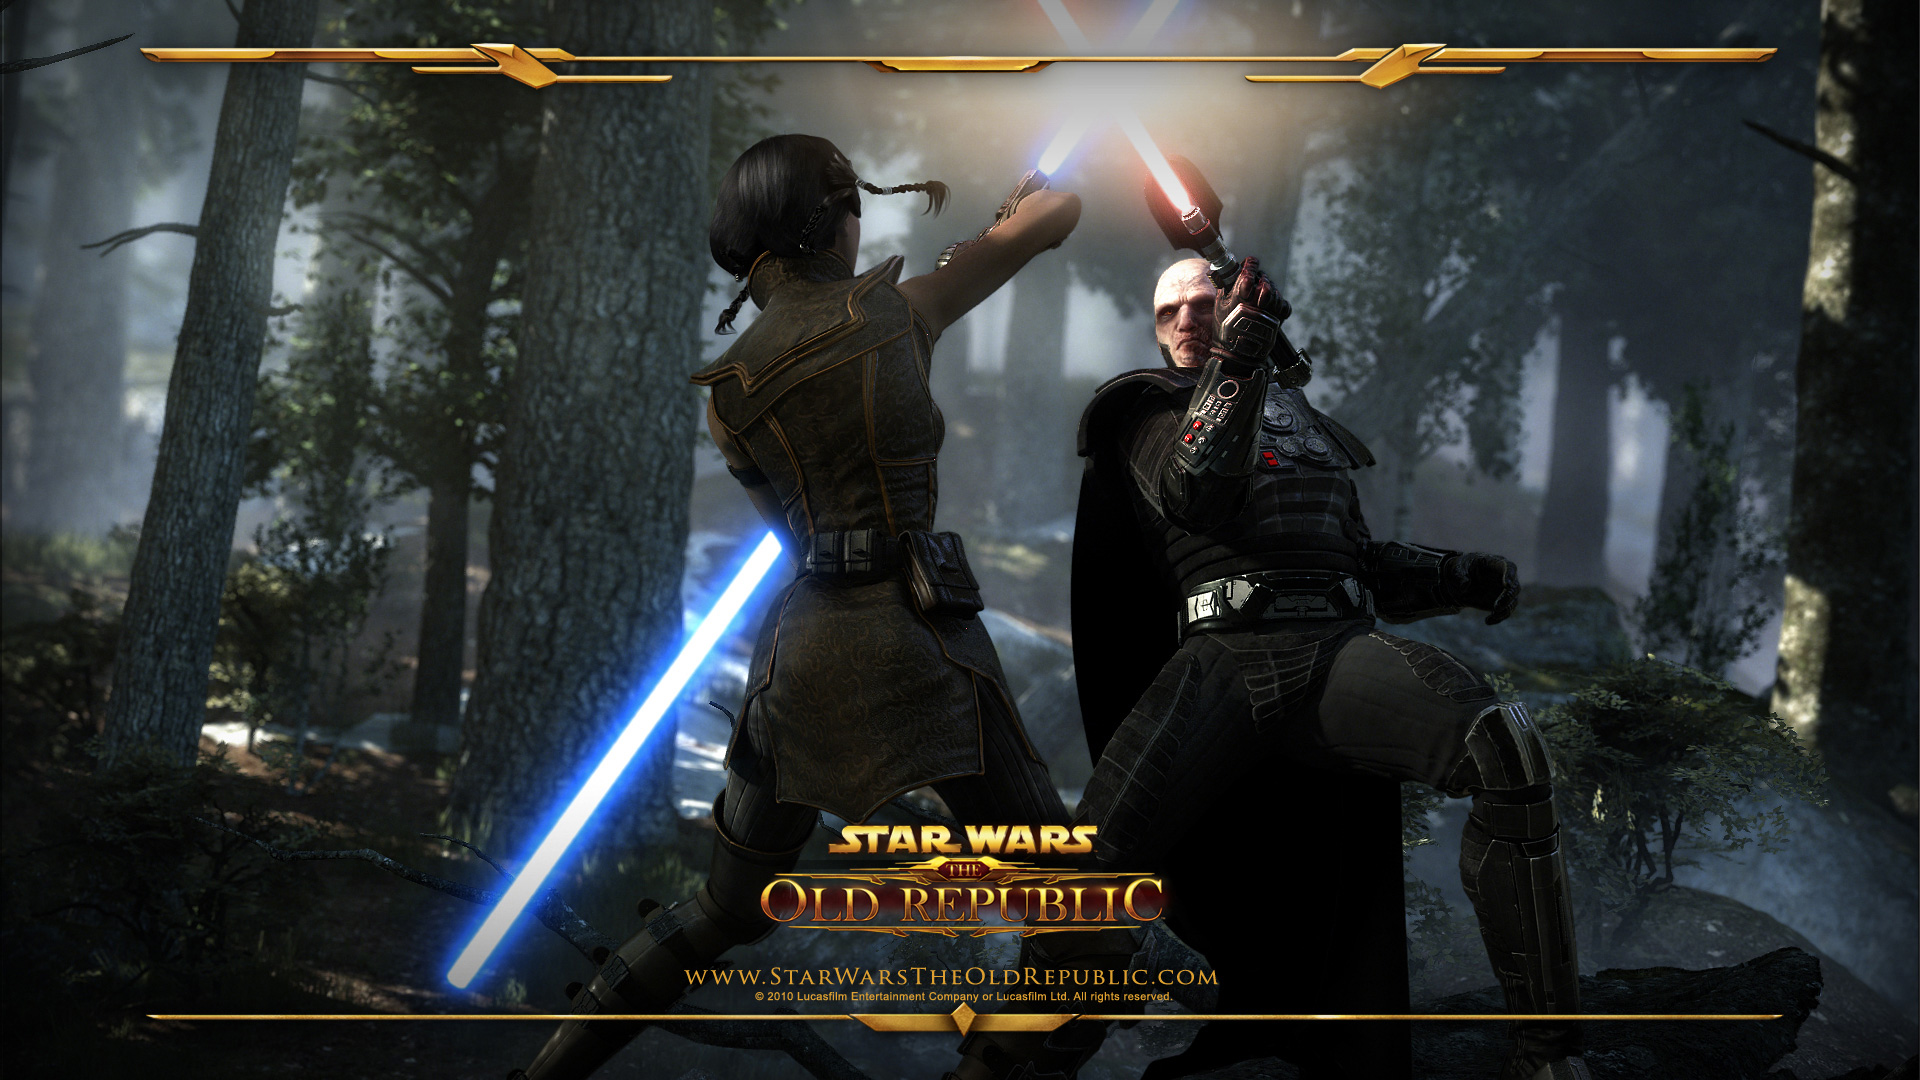 Free Star Wars: The Old Republic Wallpaper in 1920x1080